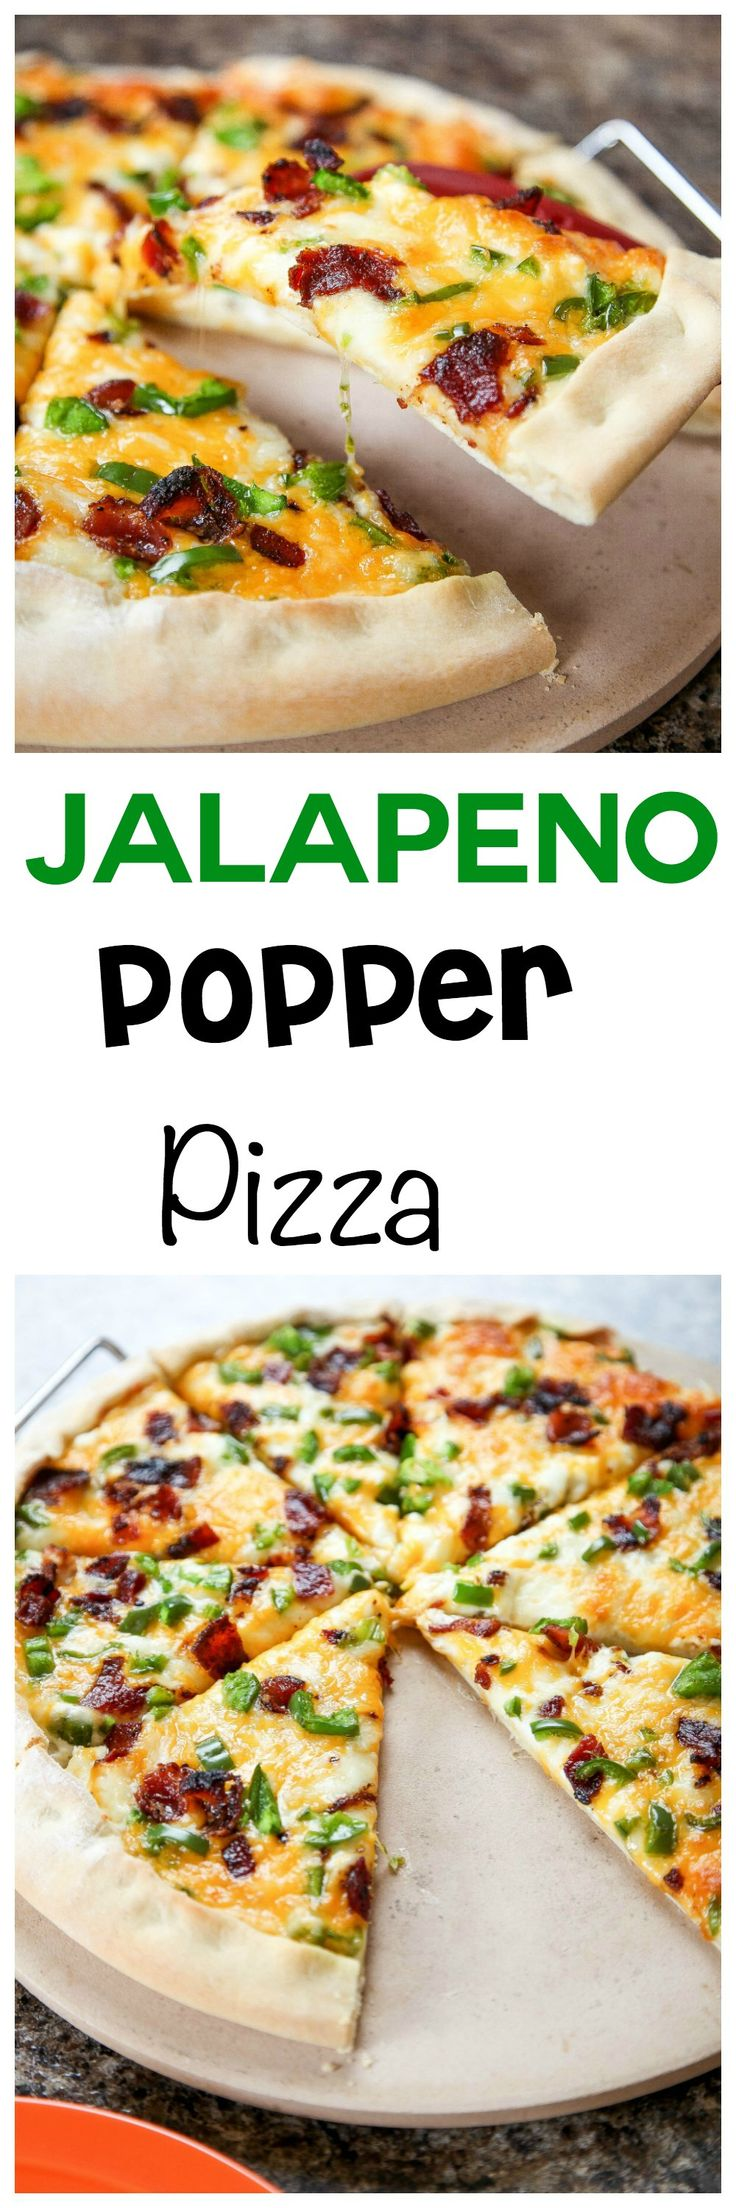 Jalapeno Popper Pizza: Spicy jalapenos and crunchy bacon inside the easiest homemade pizza crust ever! Tastes just like a jalapeno popper!